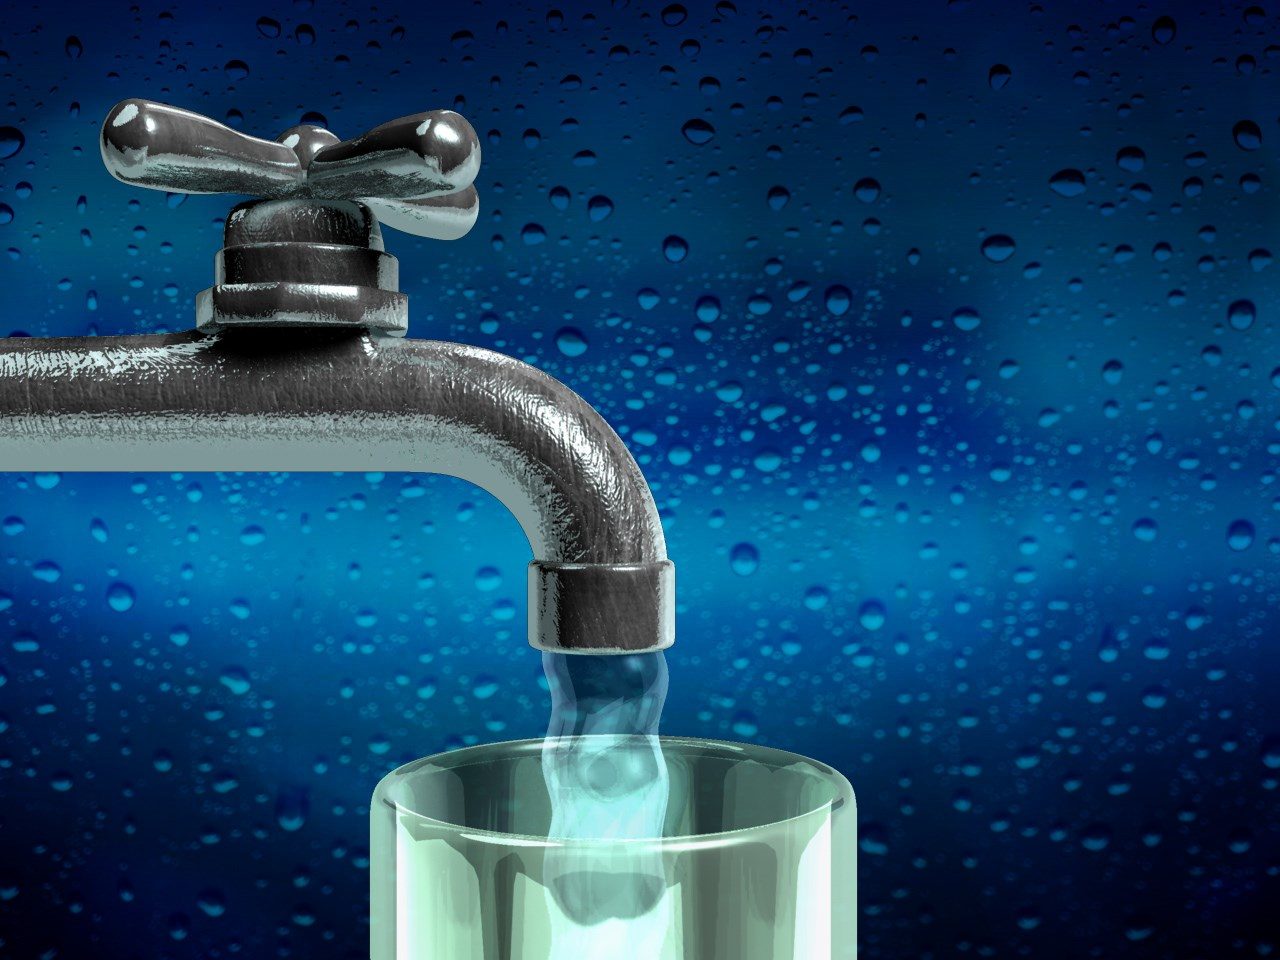 Large areas of the Town of Bedford are facing water issues.